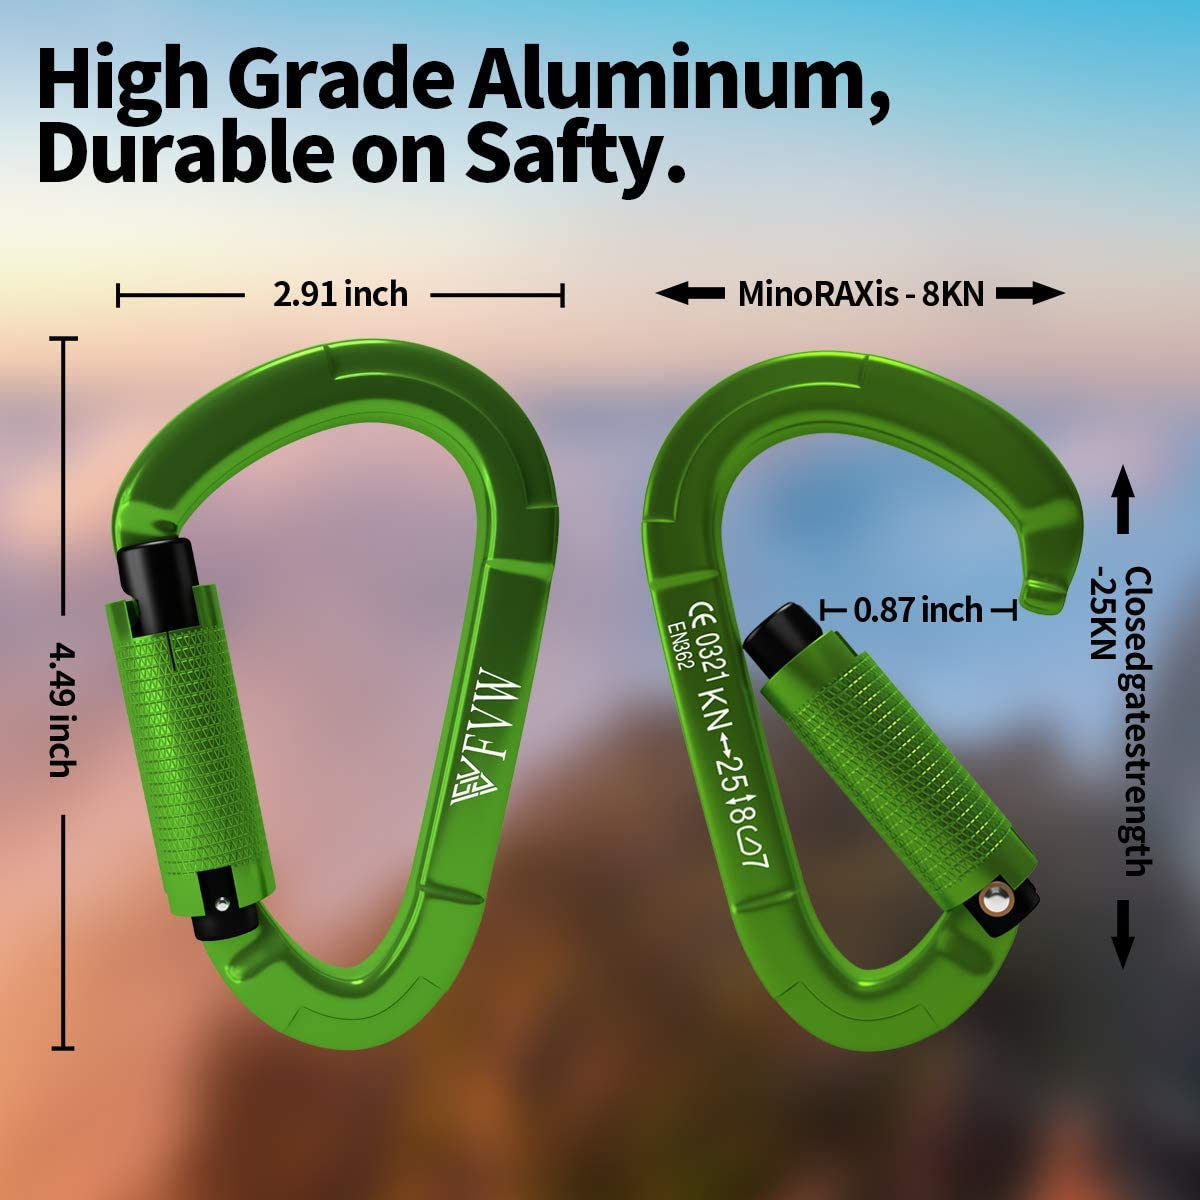 Hiking /& Utility Camping Locking Dog Leash and Harness Swing Green FVW 3Pack Heavy Duty Climbing Carabiners,25KN Auto Locking Rock Climbing Carabiners Clips for Hammocks